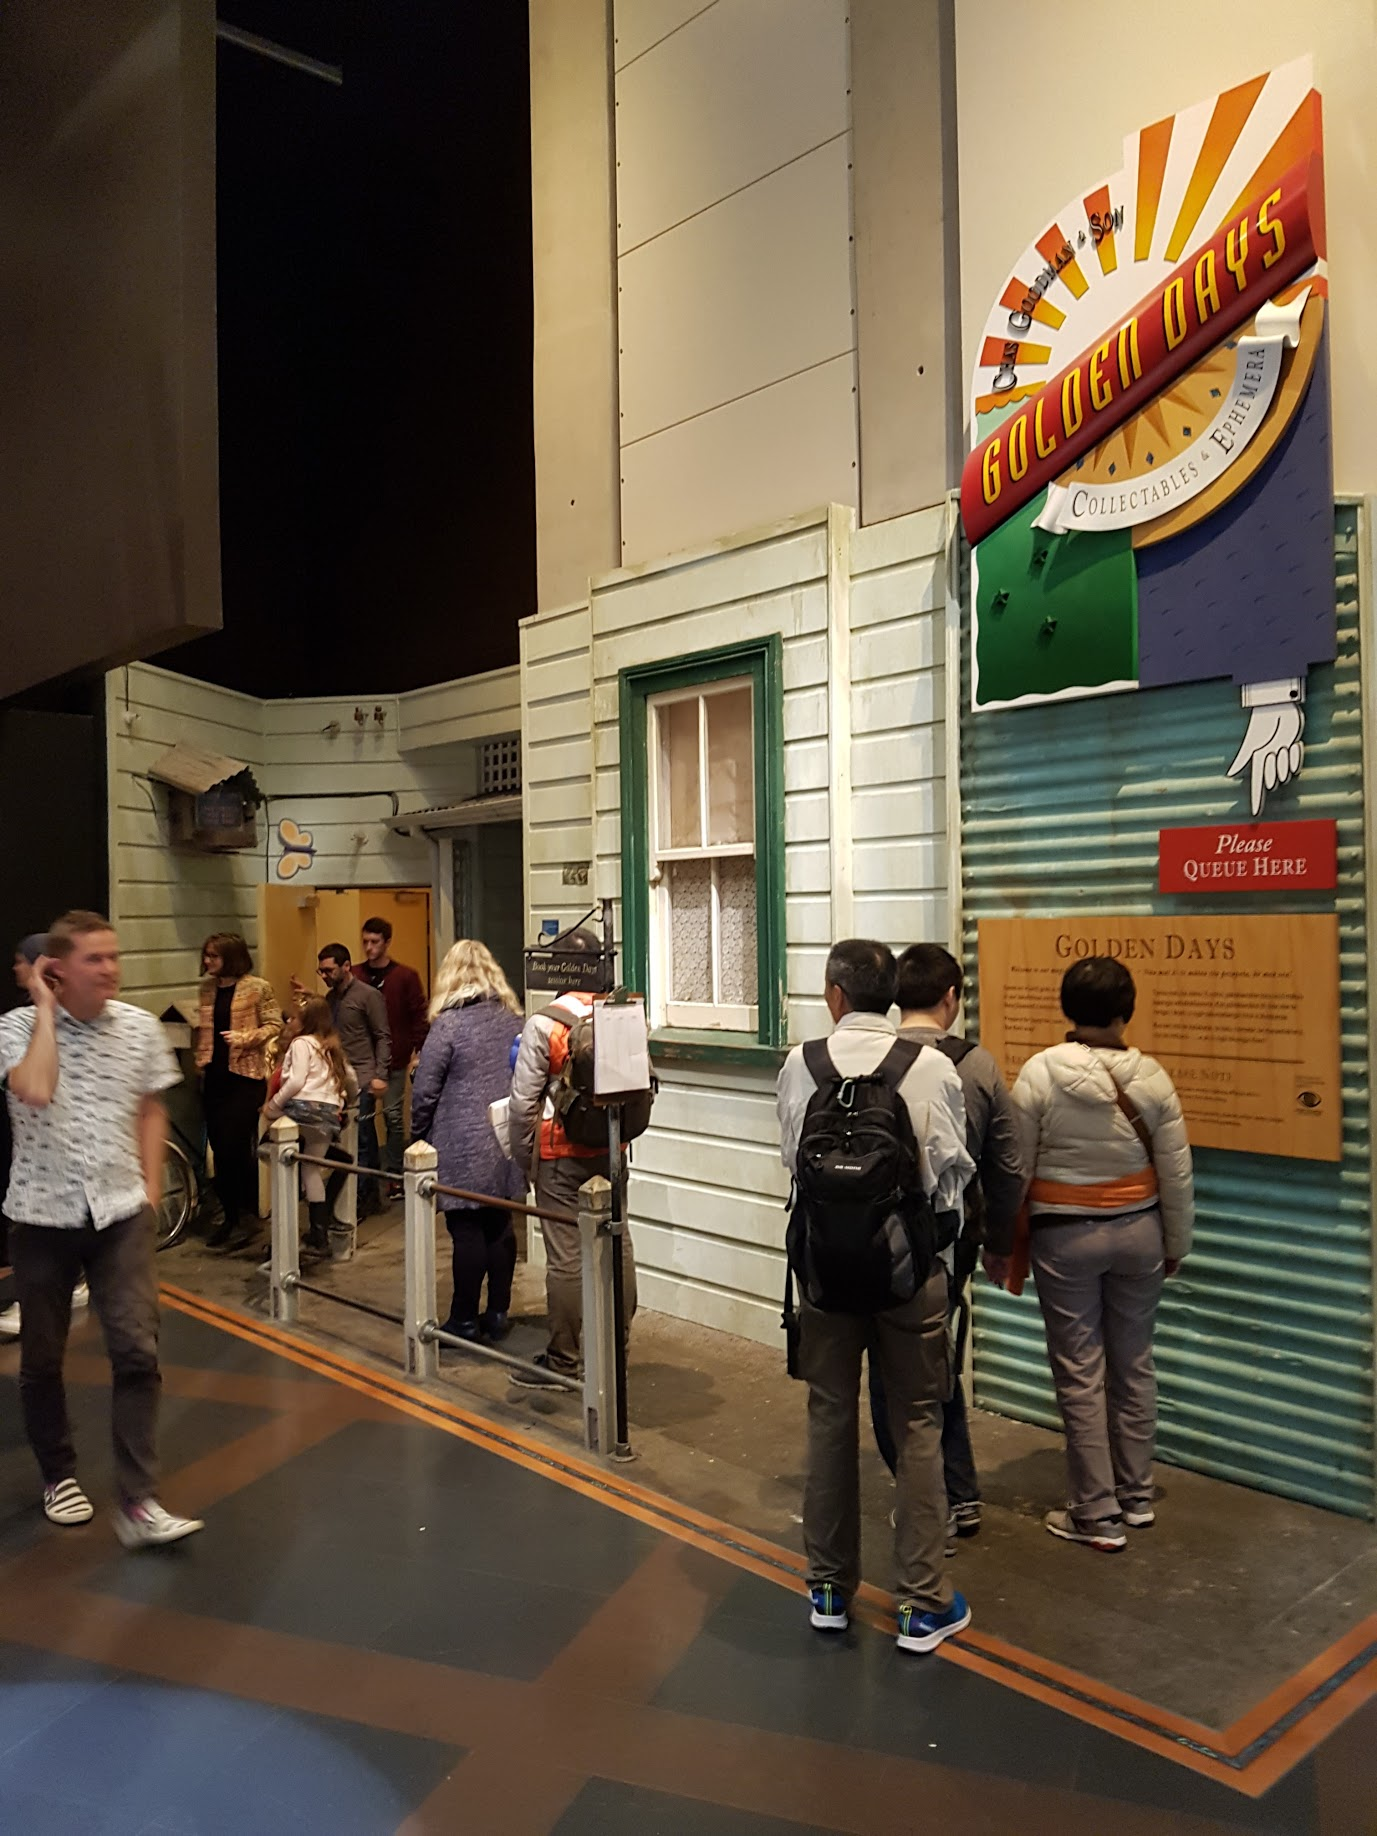 Visitors queue to see Golden Days shortly before its closure